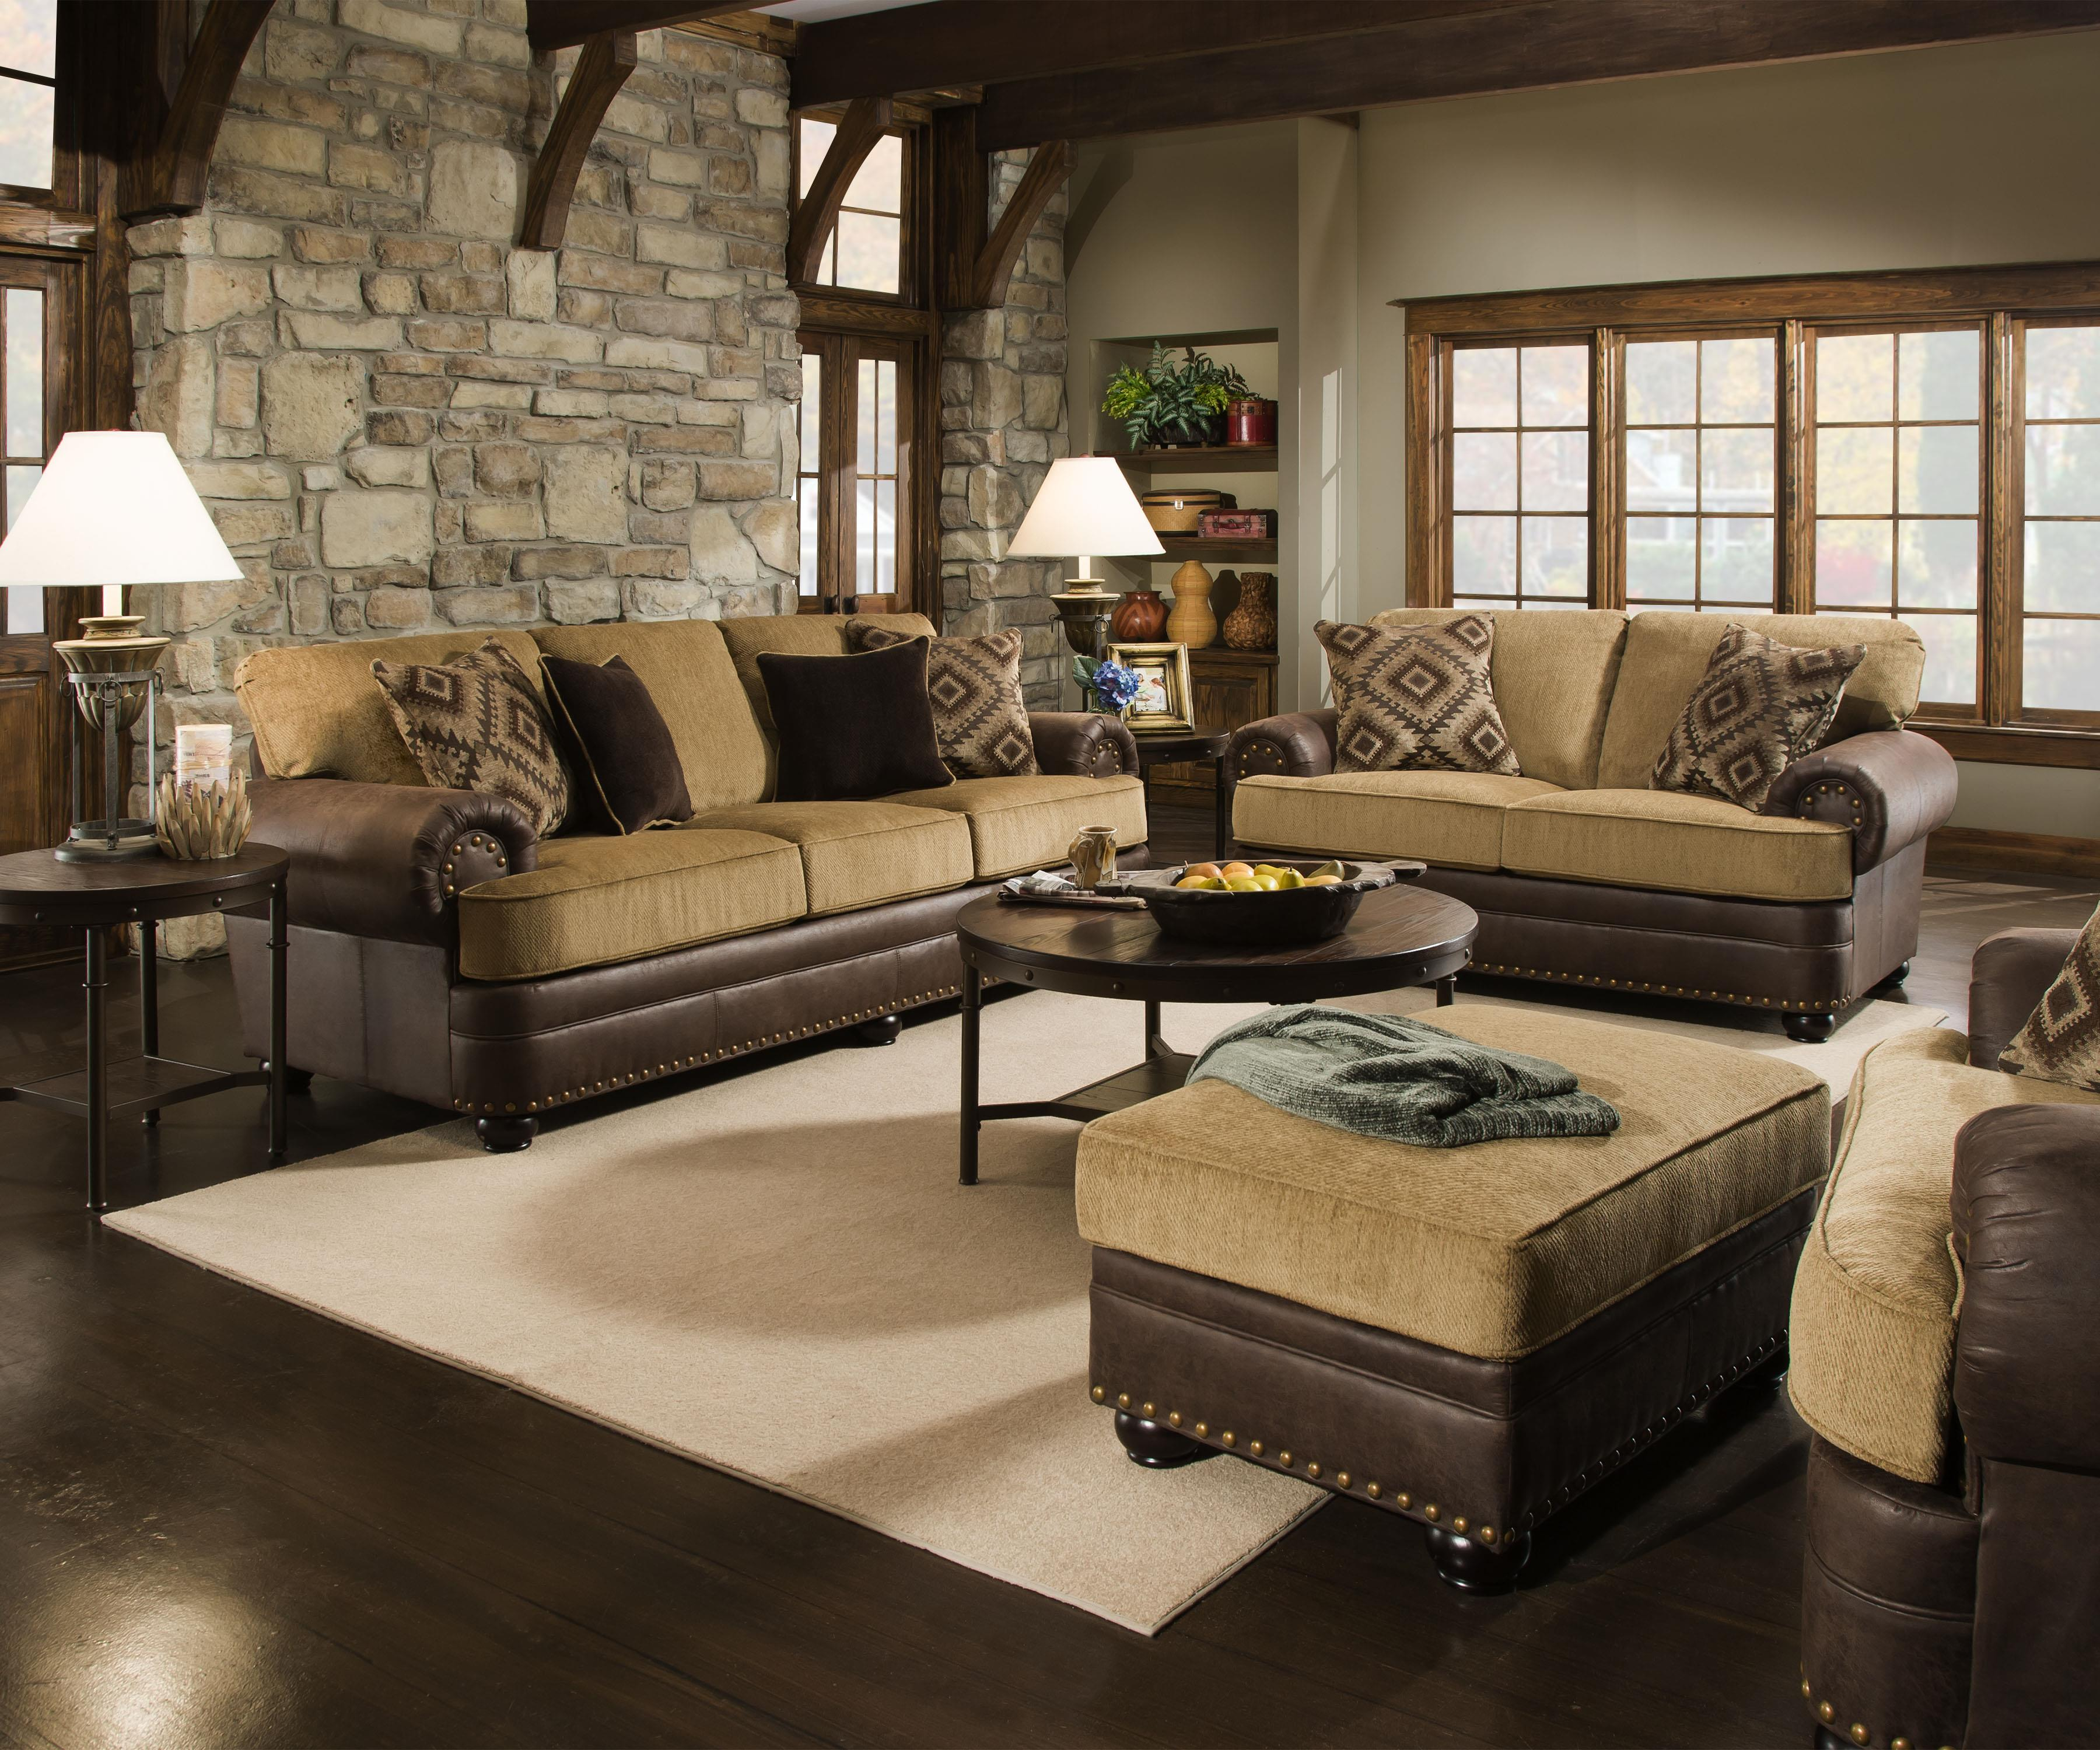 fayetteville in cheap remarkable nc of furniture size stores full ideas area picture inspirations greensboro